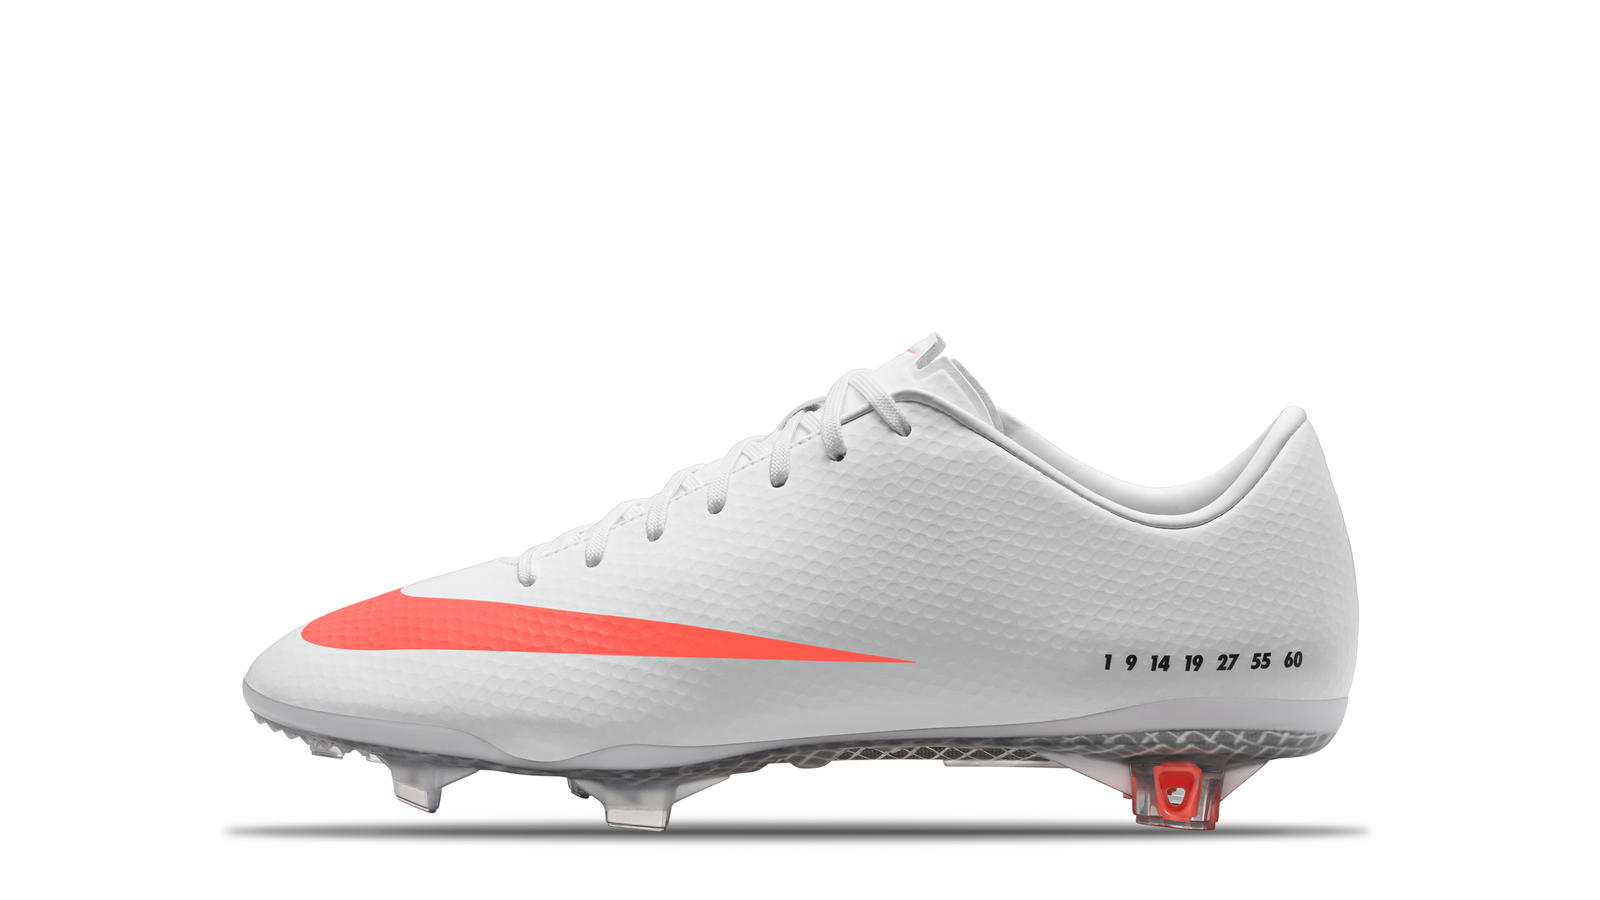 2013 CR7 SE Mercurial Vapor 9 White Black Total Orange